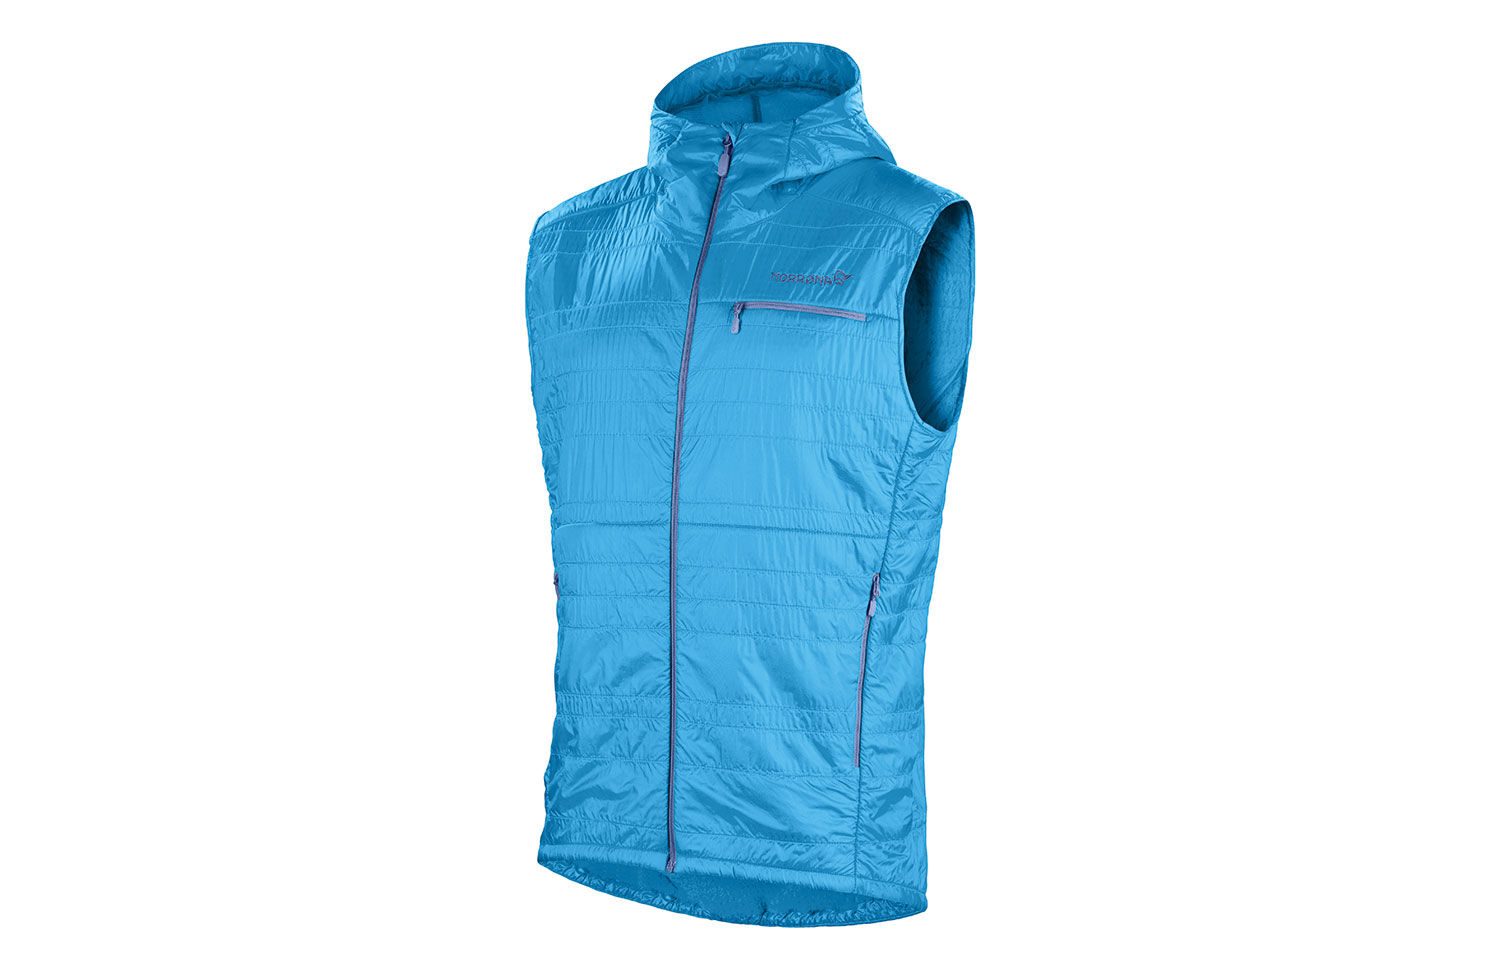 Norrøna lyngen alpha100 Vest for mens